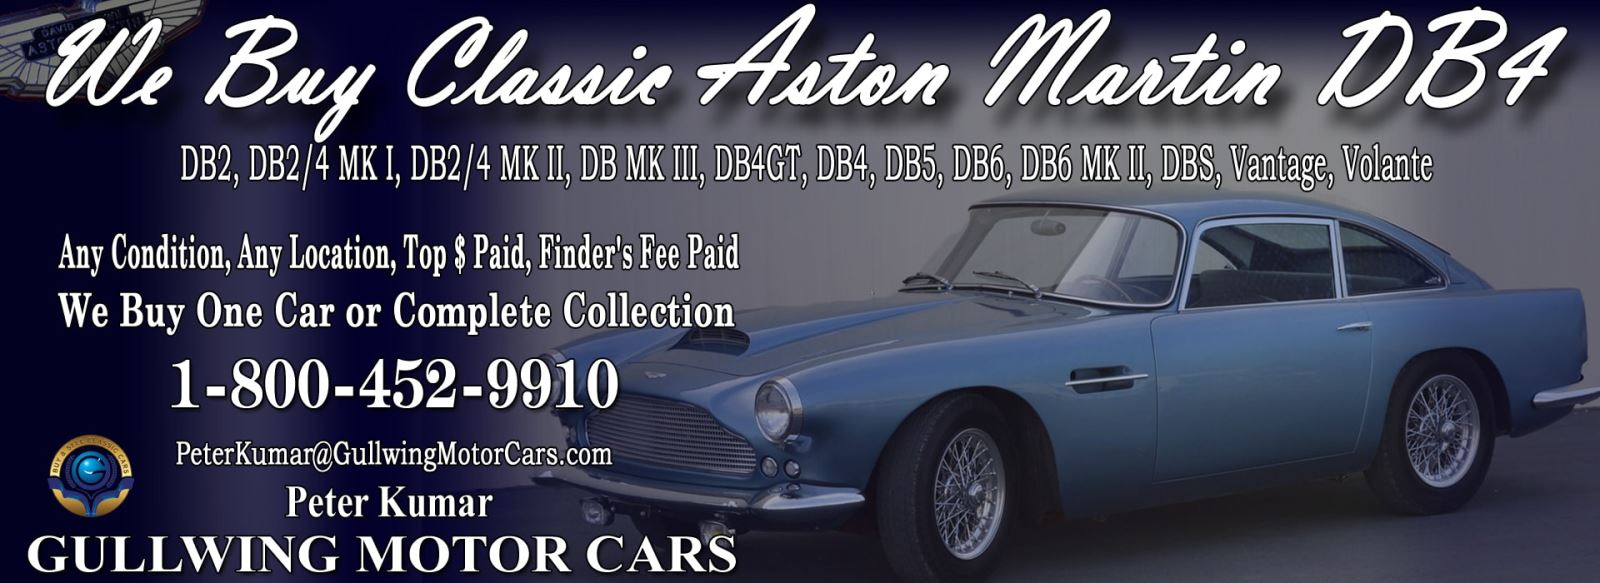 Classic Aston Martin DB4GT for sale, we buy vintage Aston Martin DB4 GT. Call Peter Kumar. Gullwing Motor